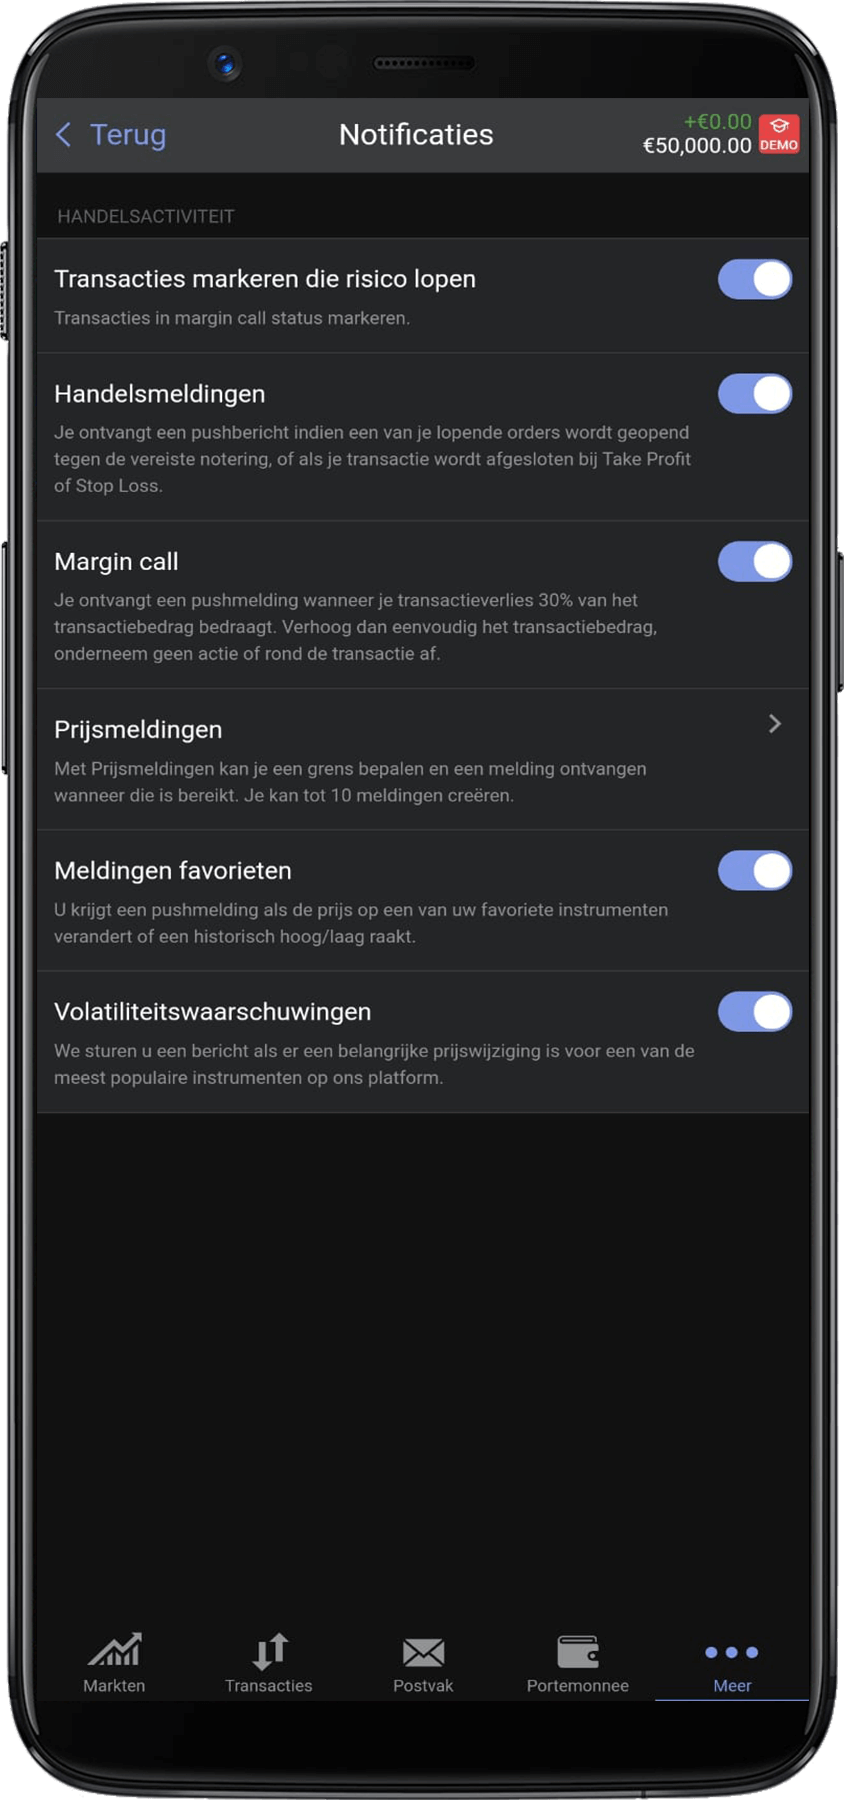 Libertex notificaties